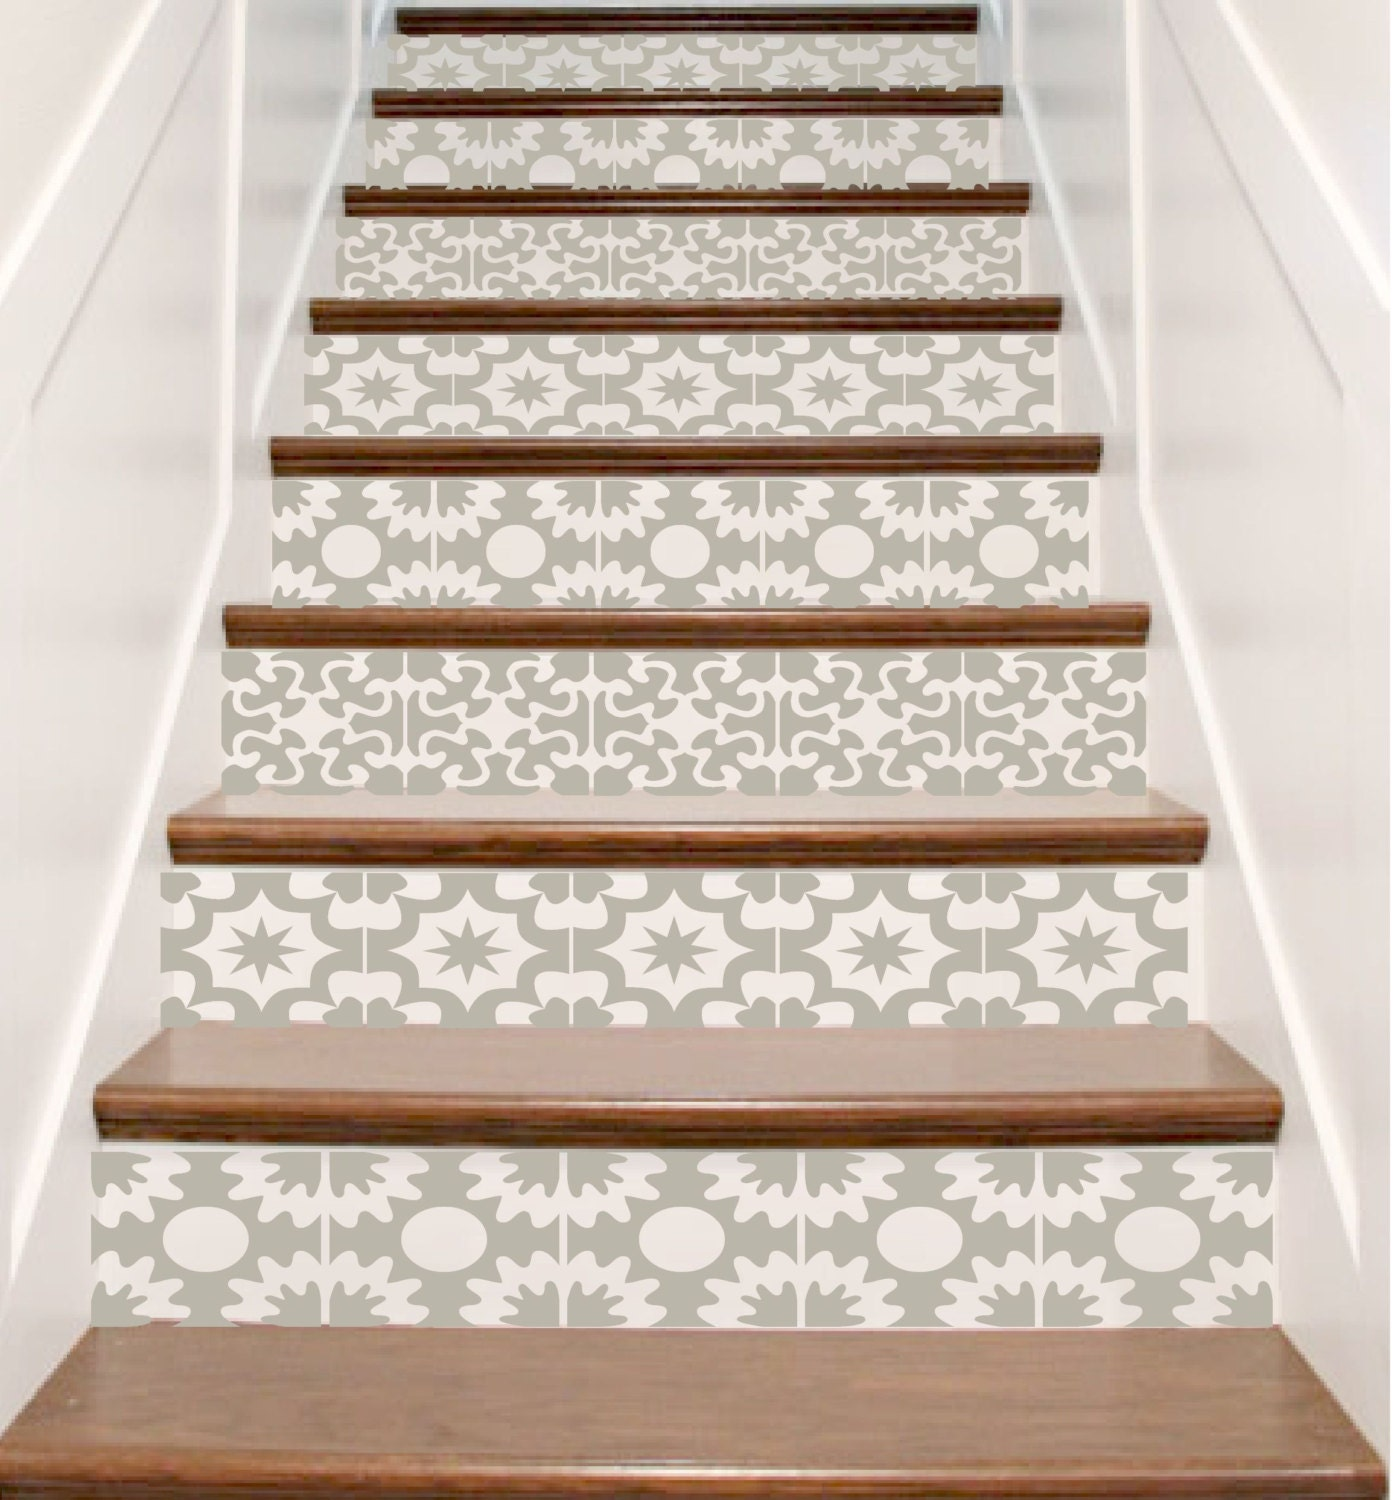 vinyl stair tile decals hacienda spanish style staircase. Black Bedroom Furniture Sets. Home Design Ideas